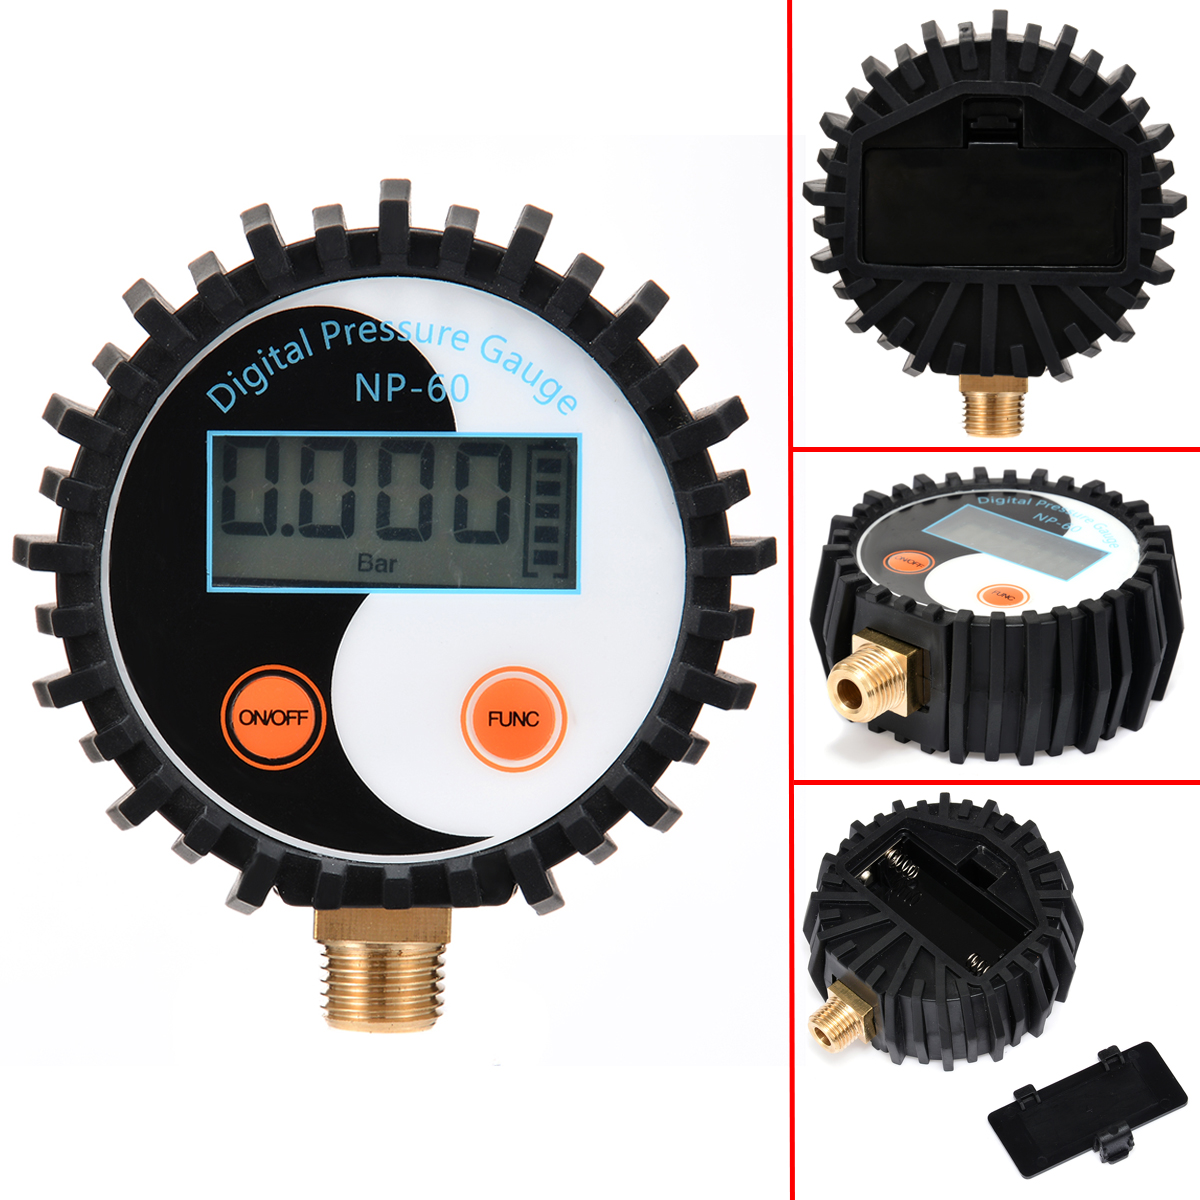 1pc battery power digital air pressure gauge gas pressure gauge tester tool 0 200psi np 60 g1 4 with vibration resistance 1pc New NP-60 G1/4 Digital Pressure Gauge 0-200PSI Battery Power Gas Tester Tool DC 3V